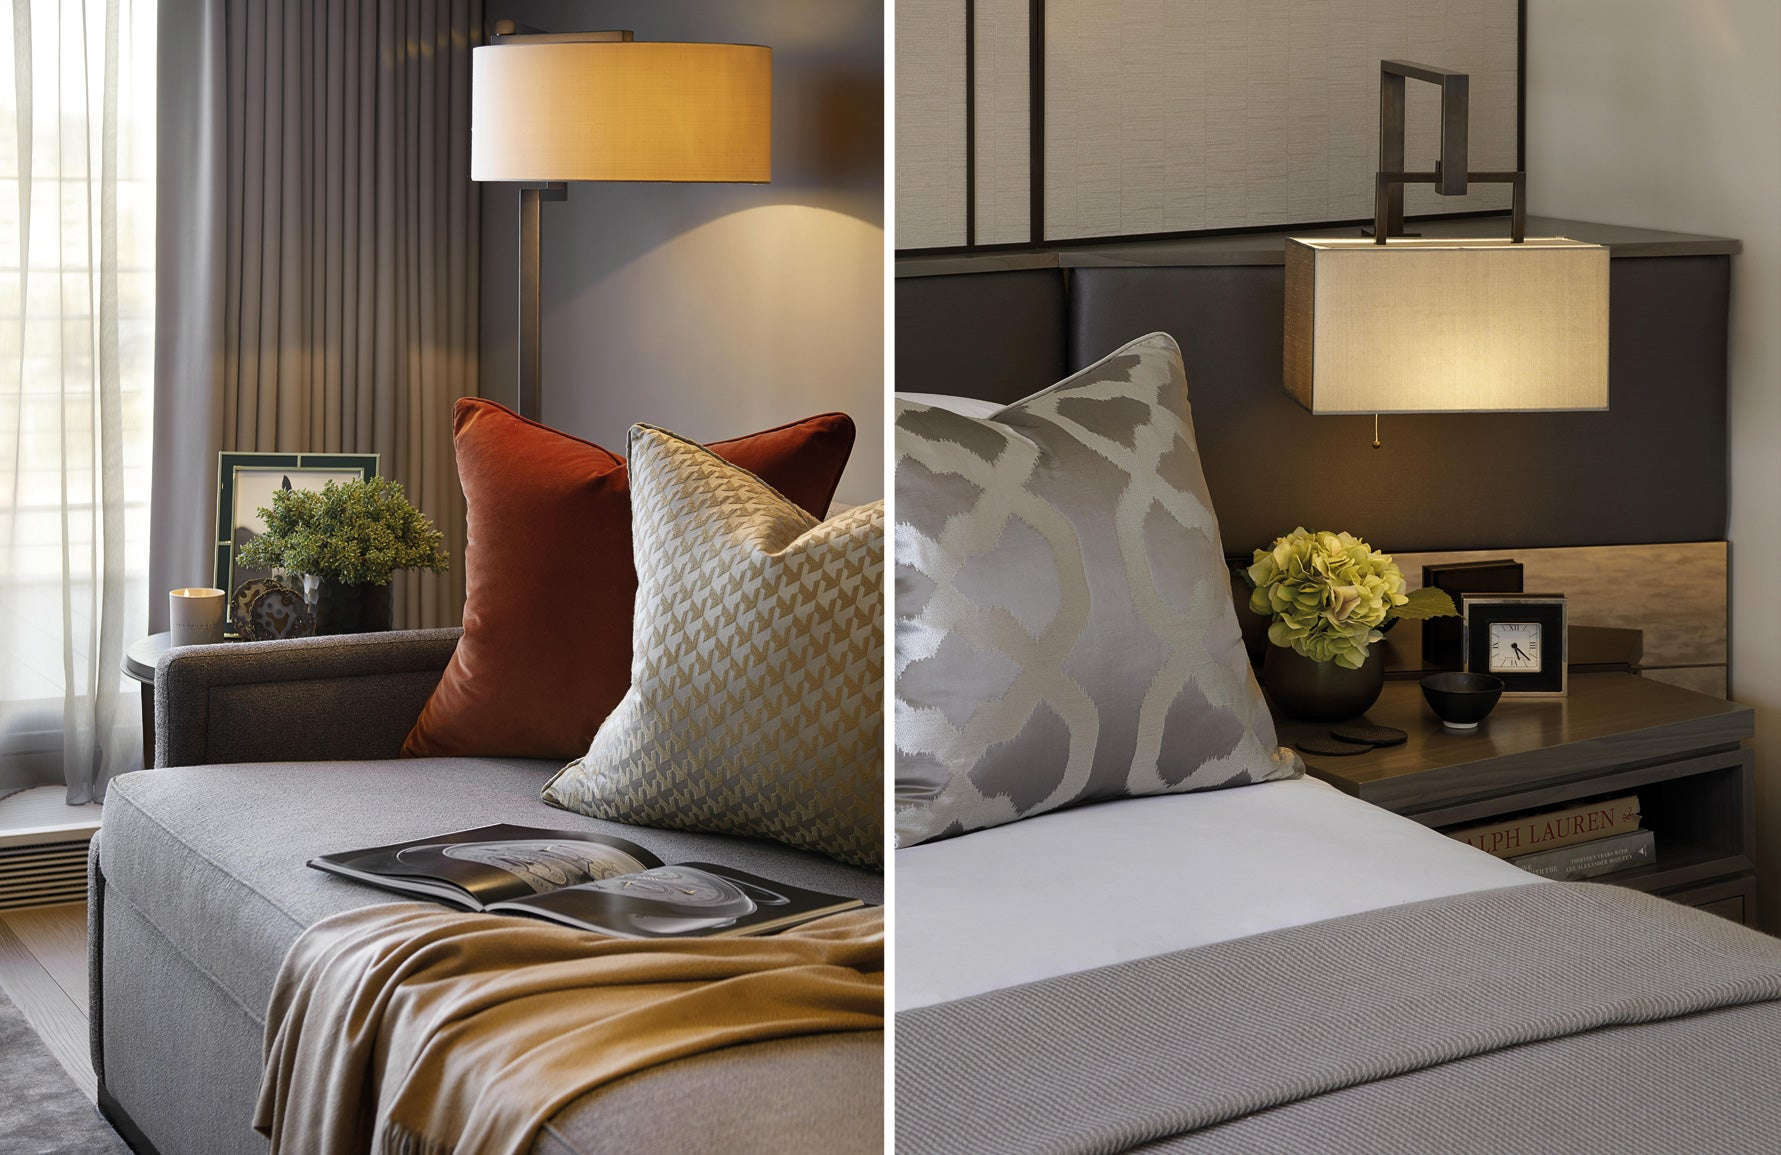 How To Light Your Home For Winter | Luxury Bedroom Design | Interior design by Laura Hammett | Read more in LuxDeco.com